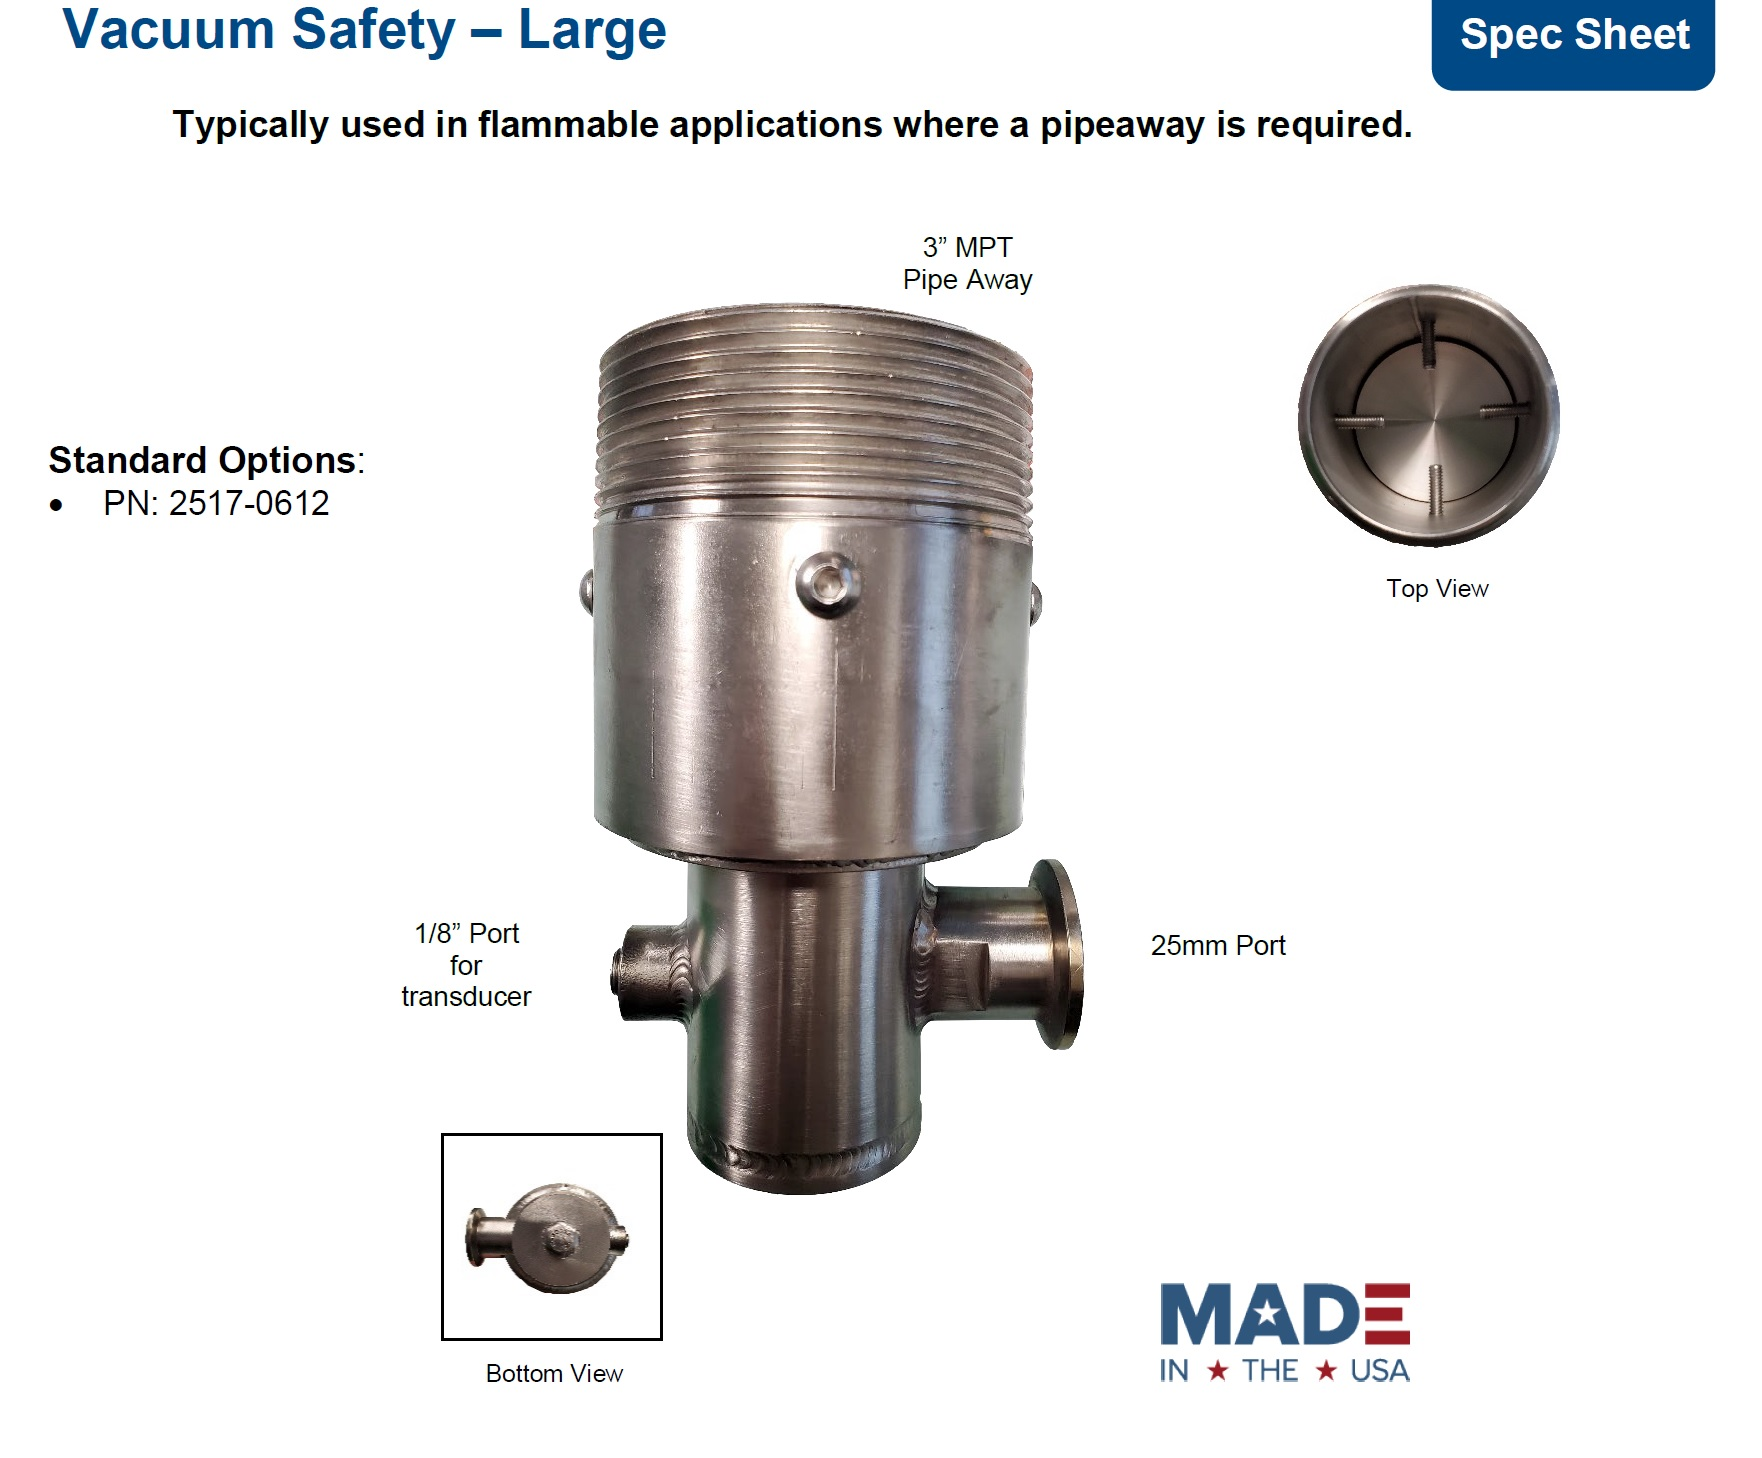 vacuum-safety-flammable-pipe-away.jpg